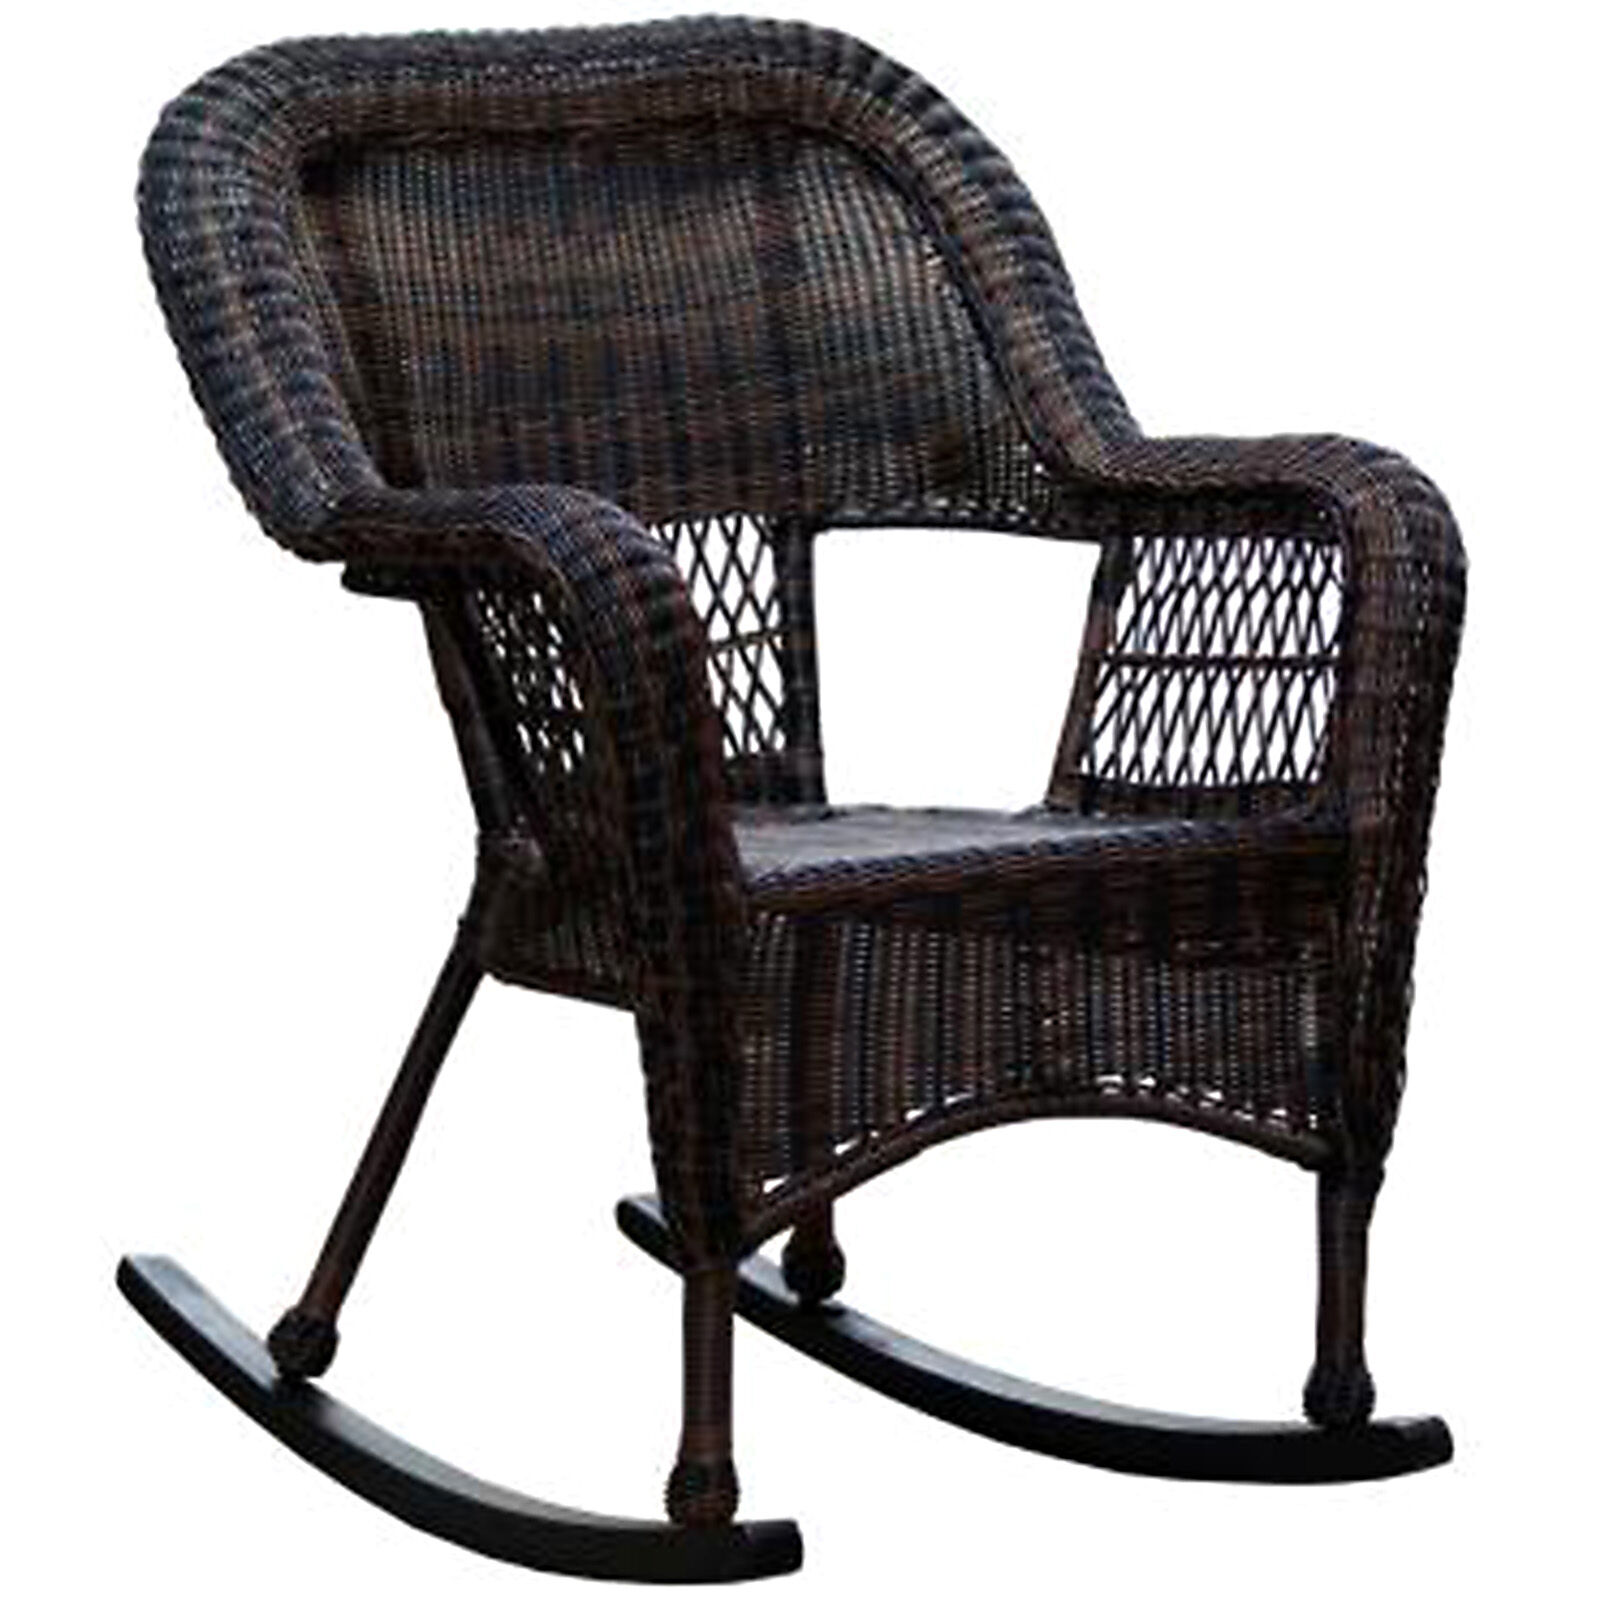 Wicker Rocker Chair Dark Brown Wicker Outdoor Patio Rocking Chair At Home